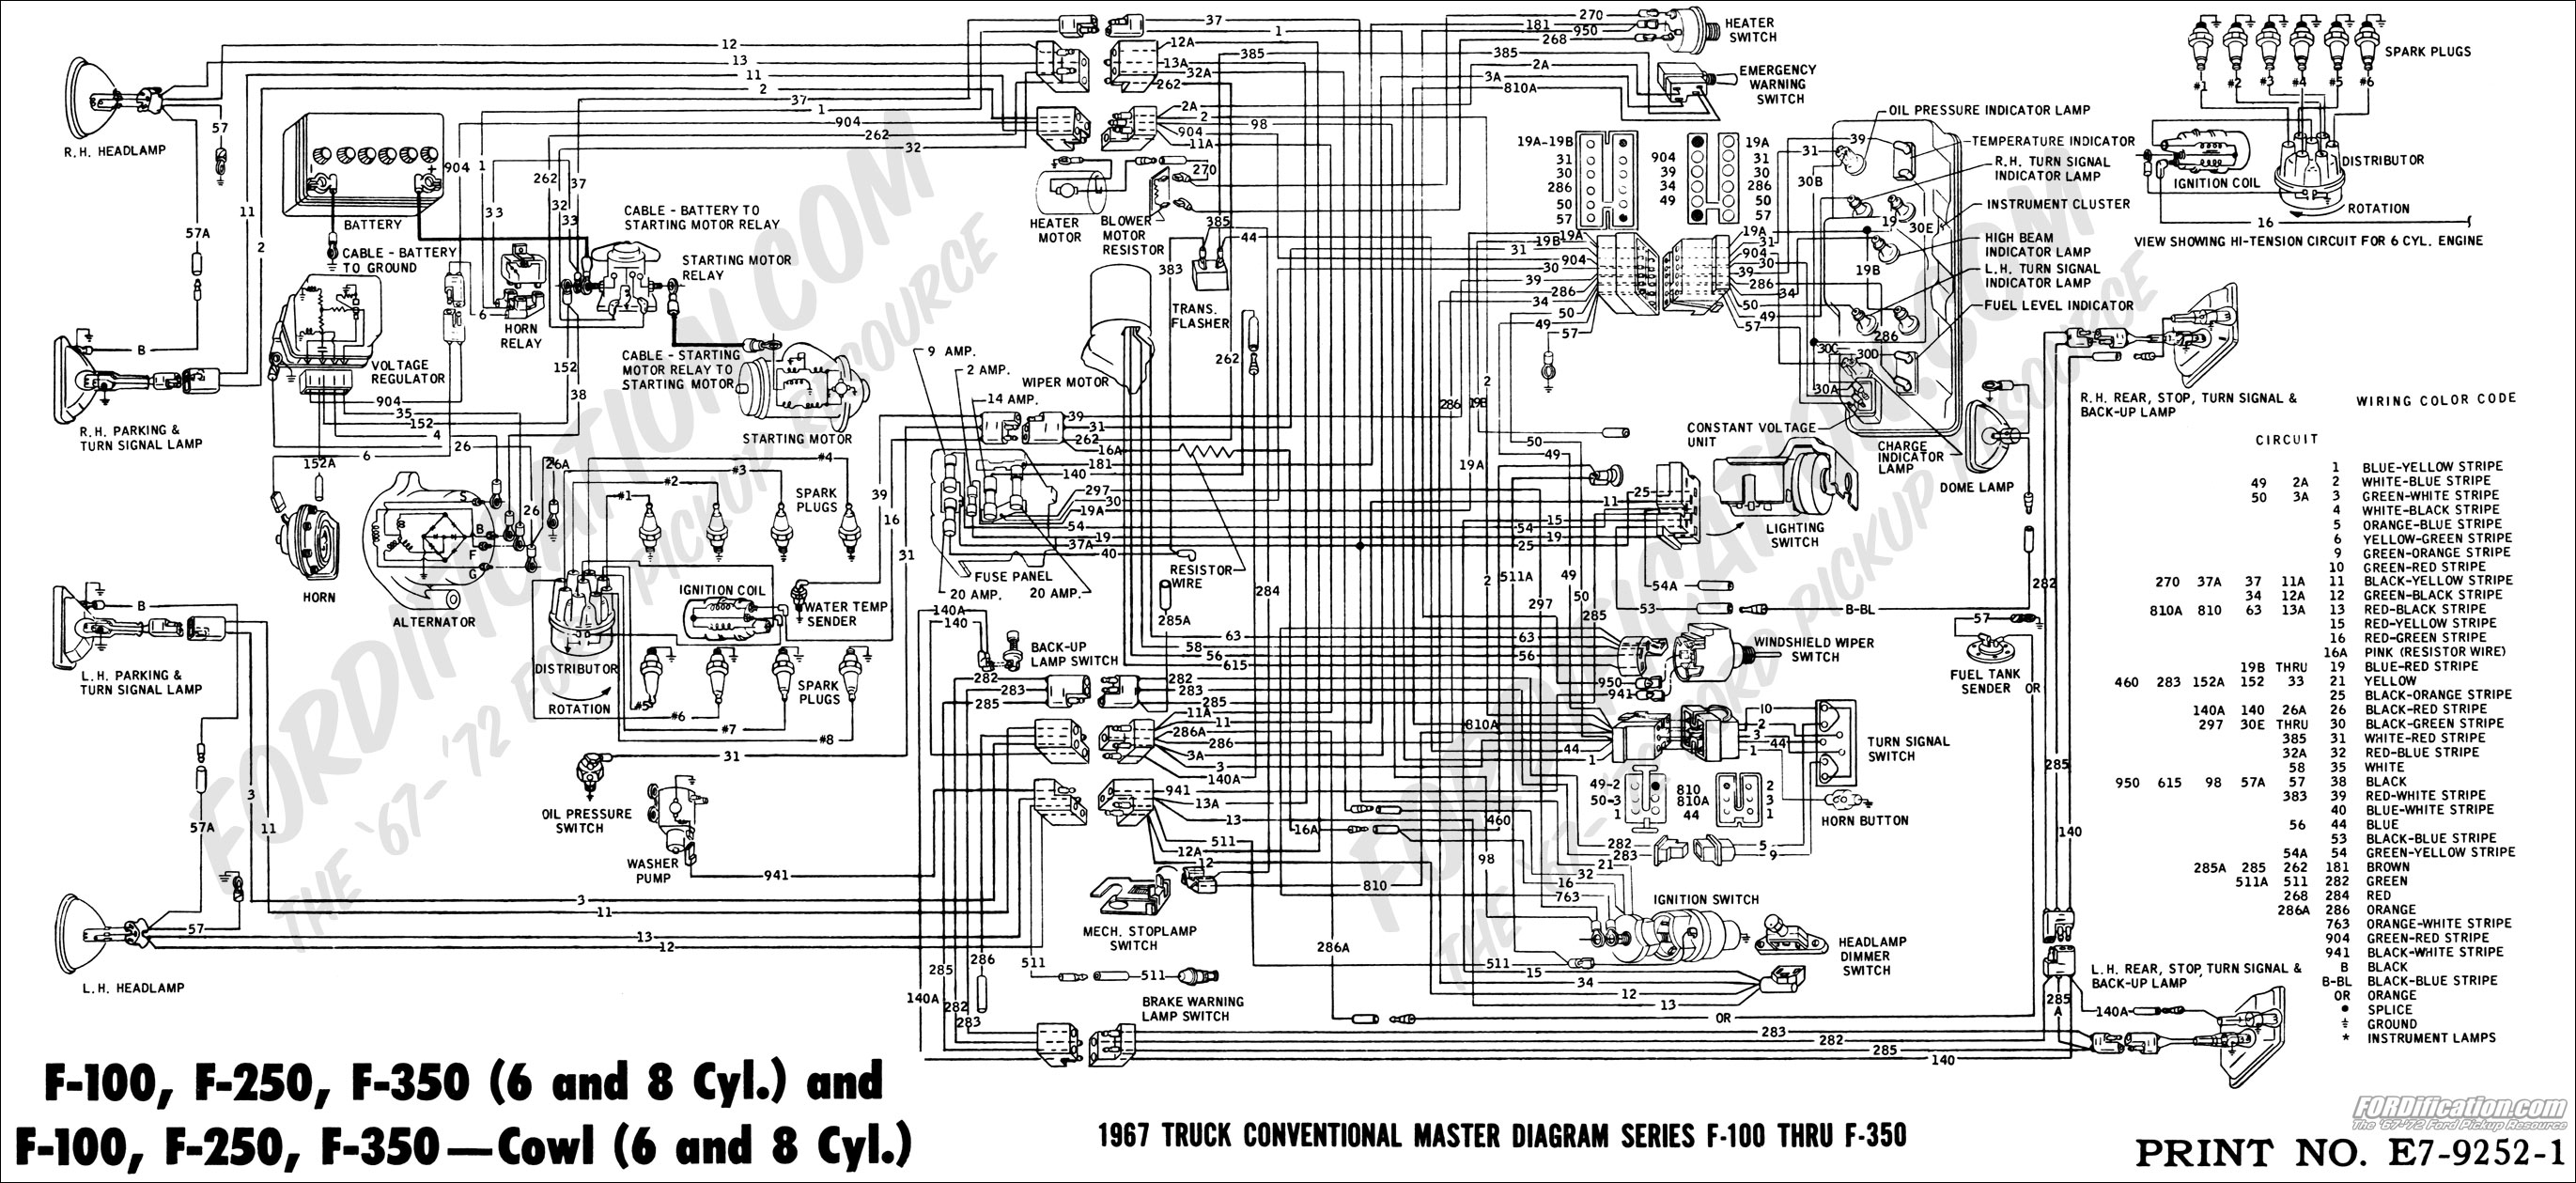 67masterdiagram ford truck technical drawings and schematics section h wiring 1999 ford ranger ignition wiring diagram at bayanpartner.co